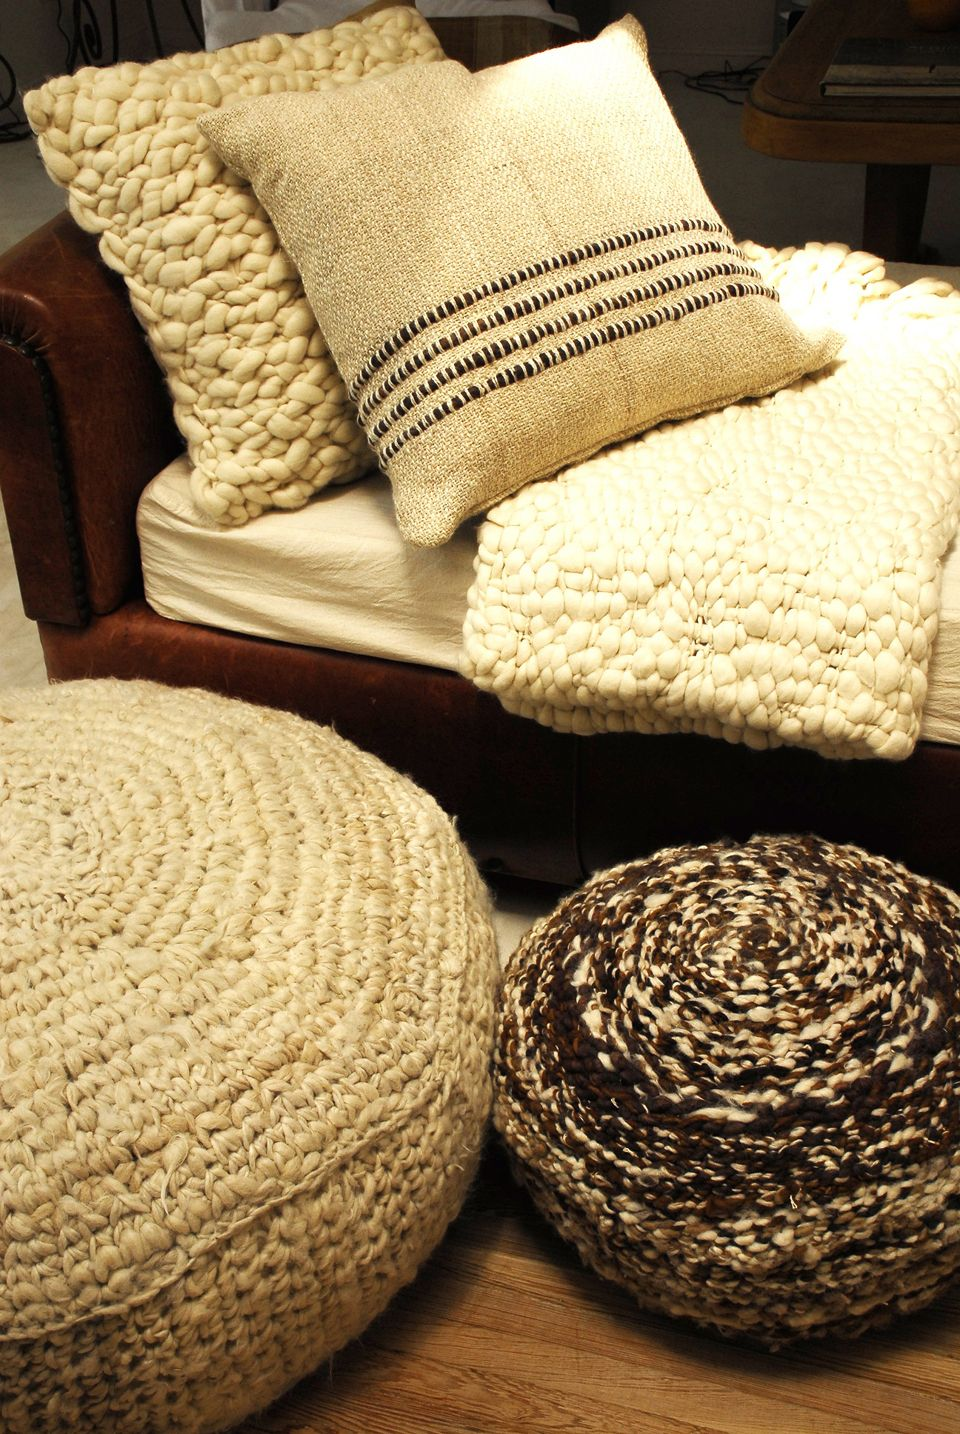 naturally chic collection  designer throws luxury blankets  - naturally chic collection  designer throws luxury blankets decorpillows  wool